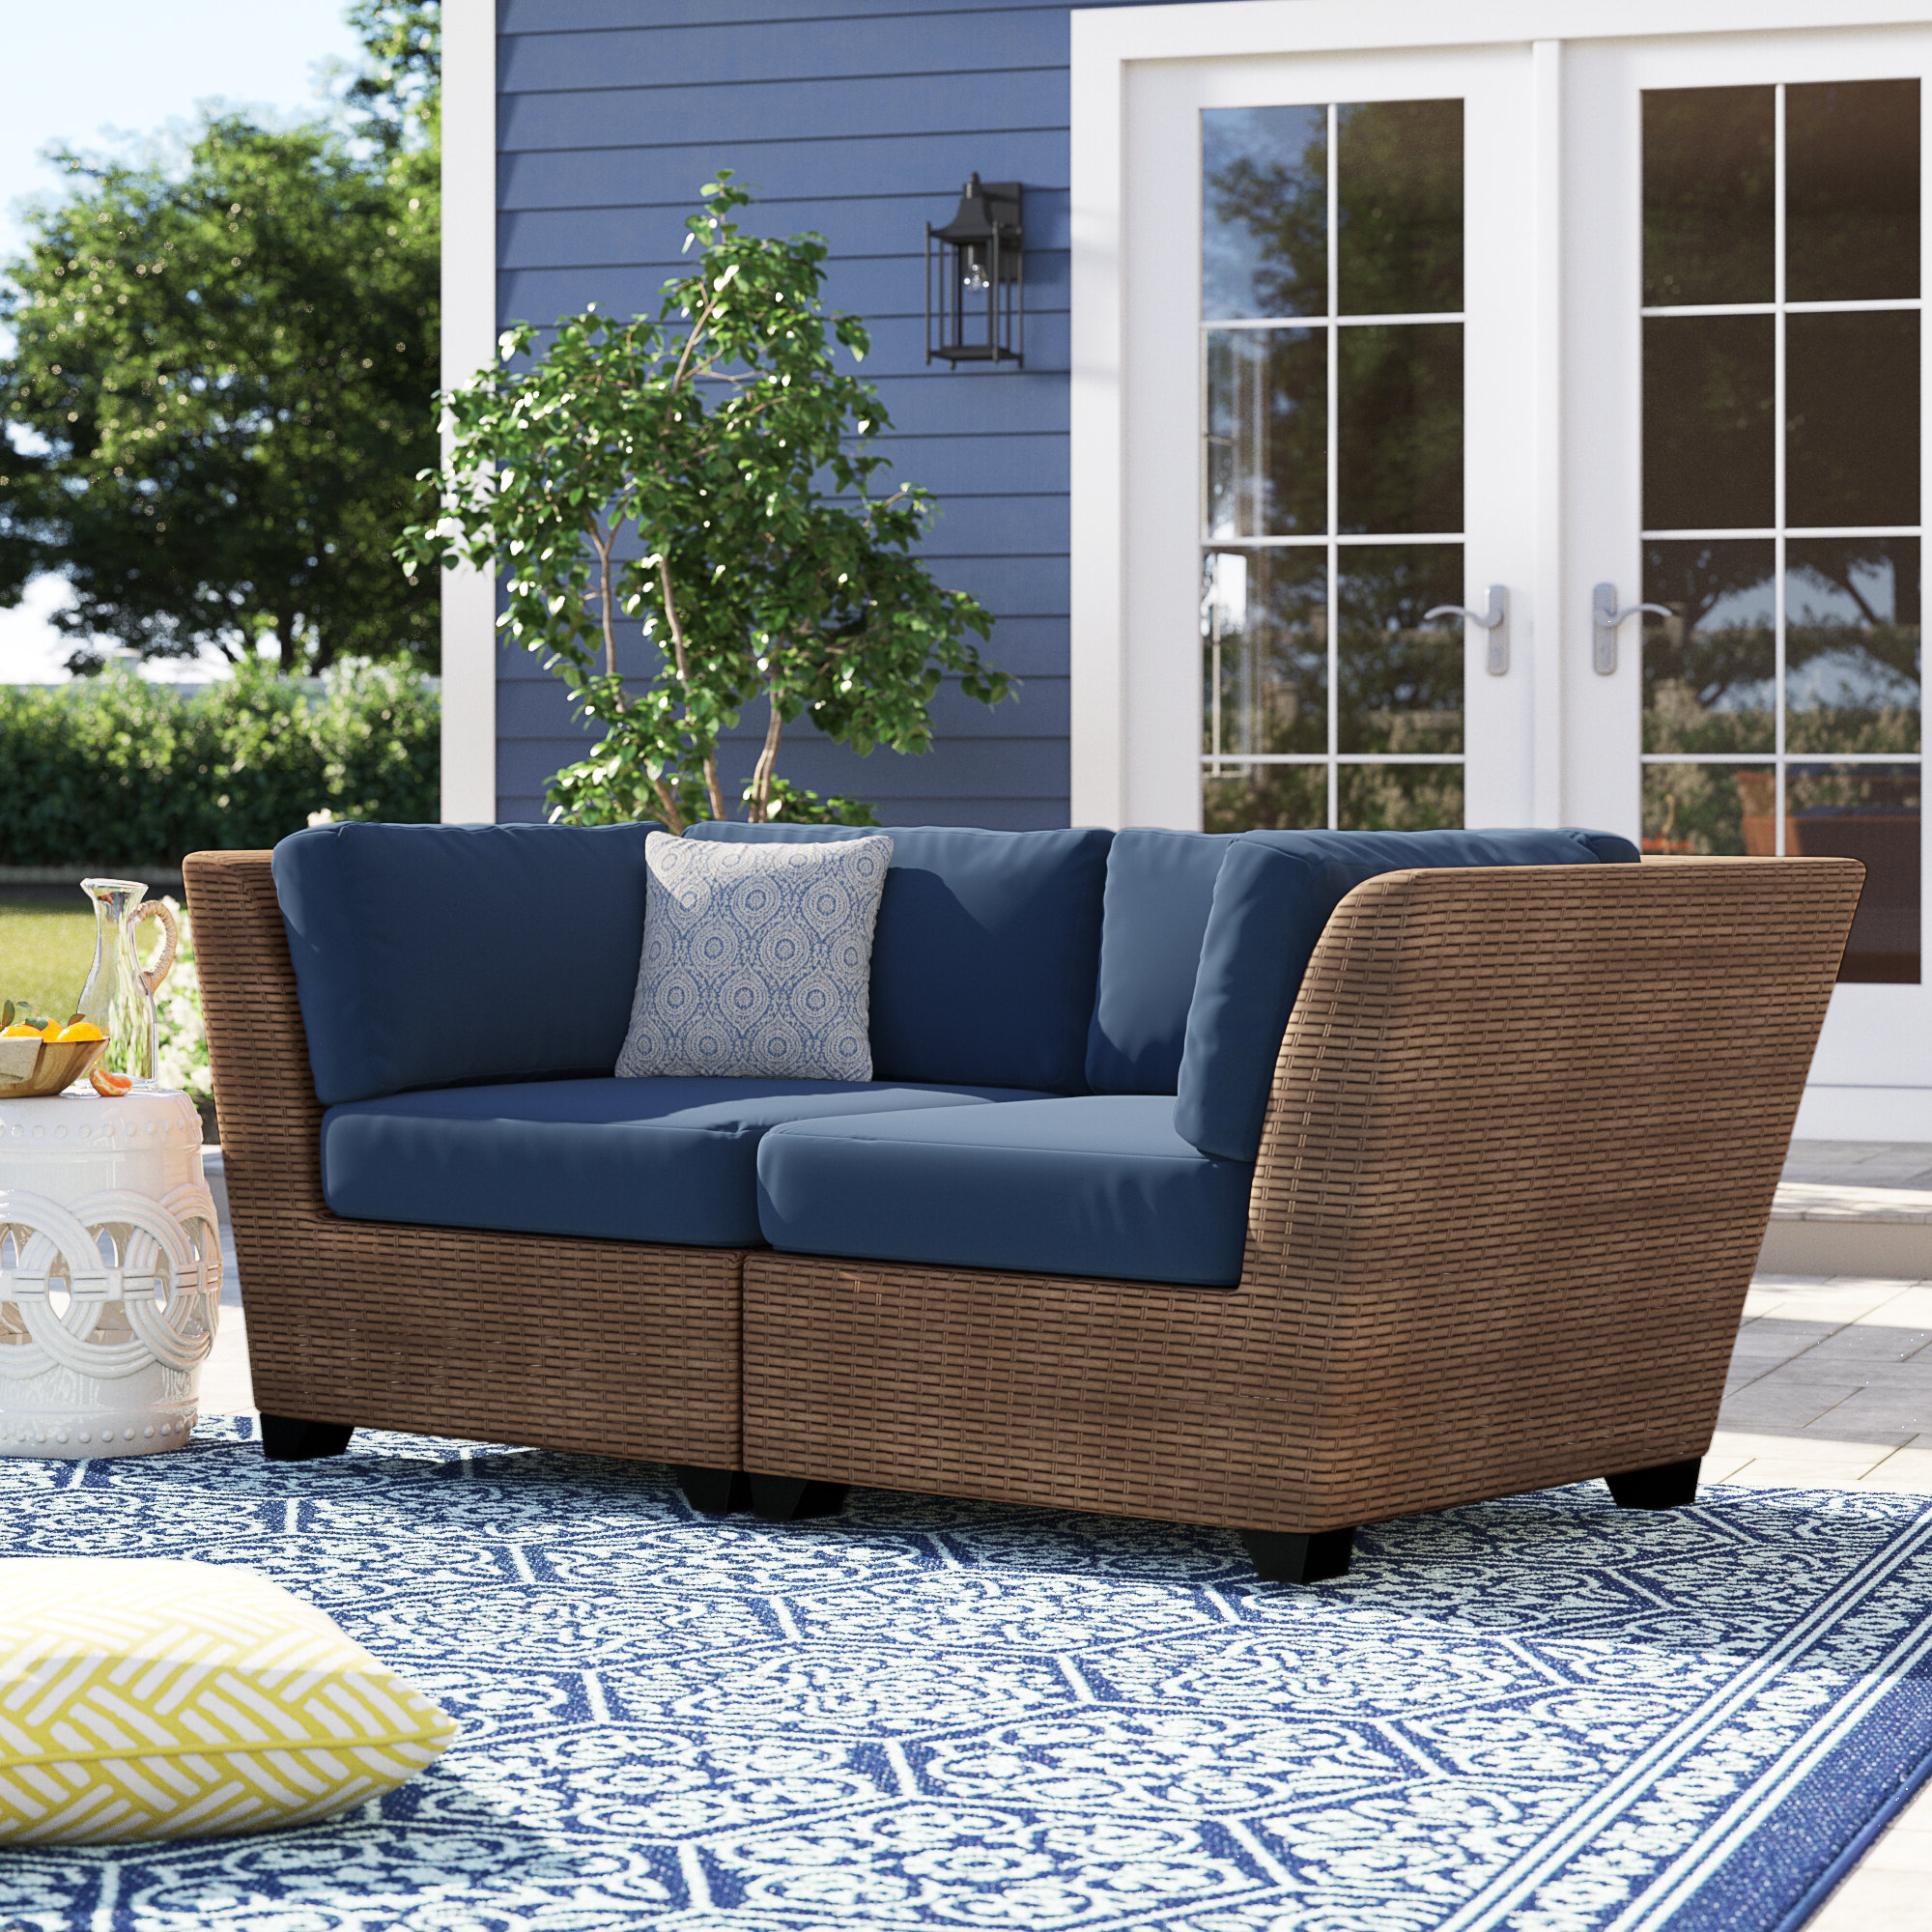 Boyce Outdoor Patio Sectionals With Cushions Throughout Well Known Sol 72 Outdoor Waterbury Patio Sectional With Cushions (Gallery 2 of 25)